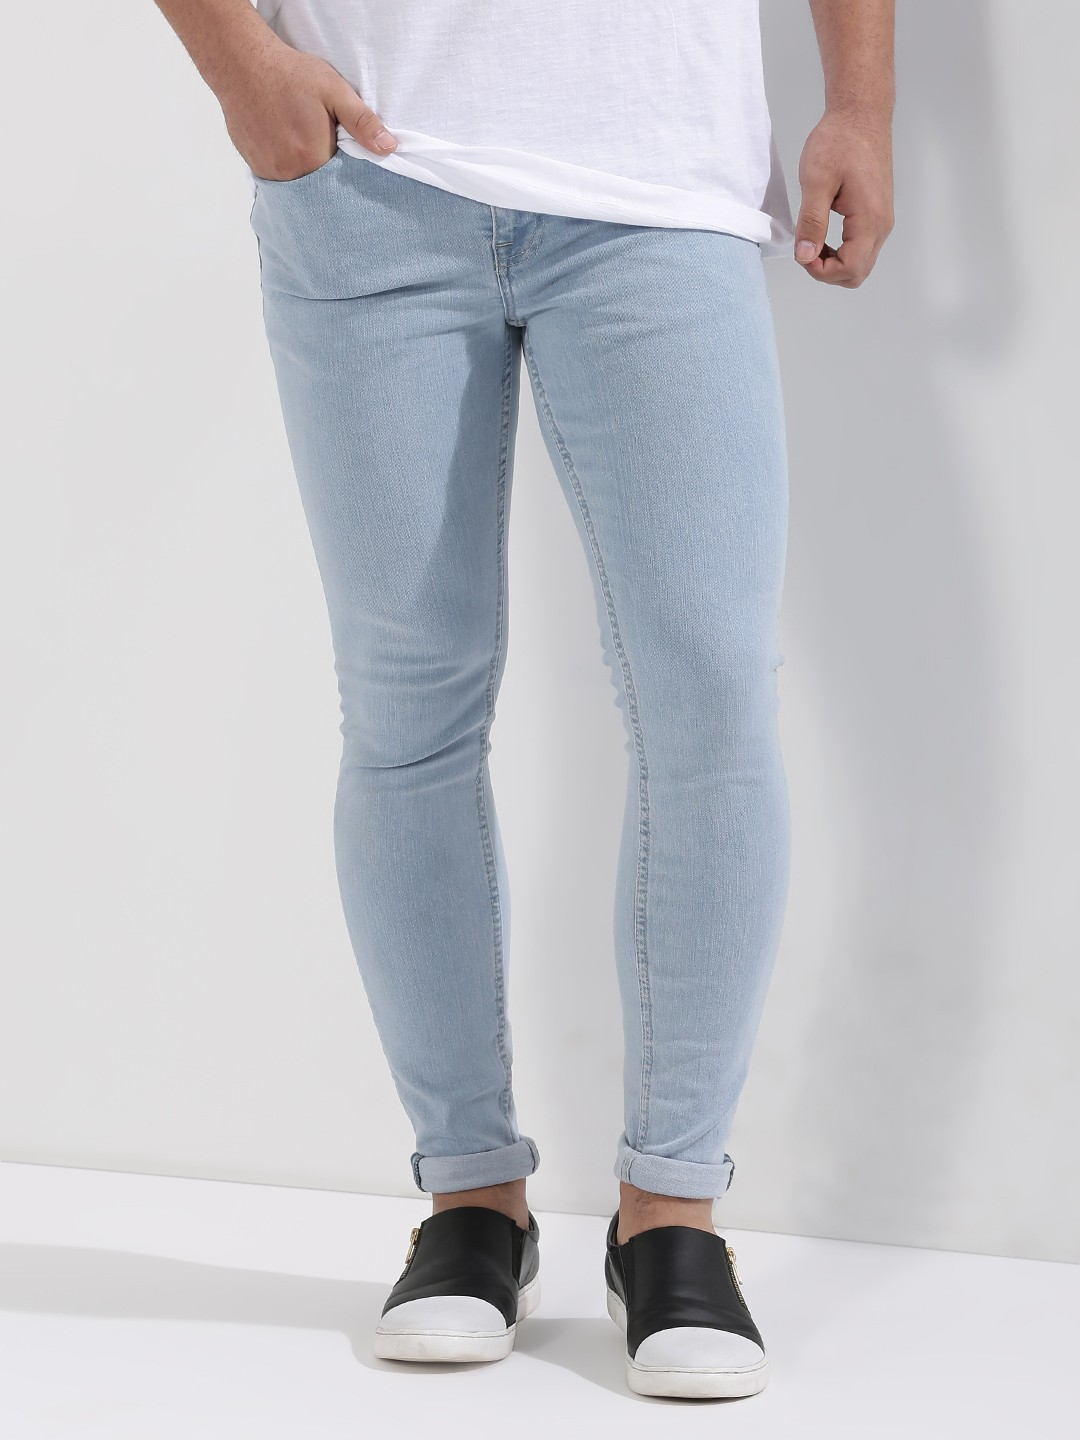 Buy New Look Light Wash Super Skinny Jeans For Men Men S